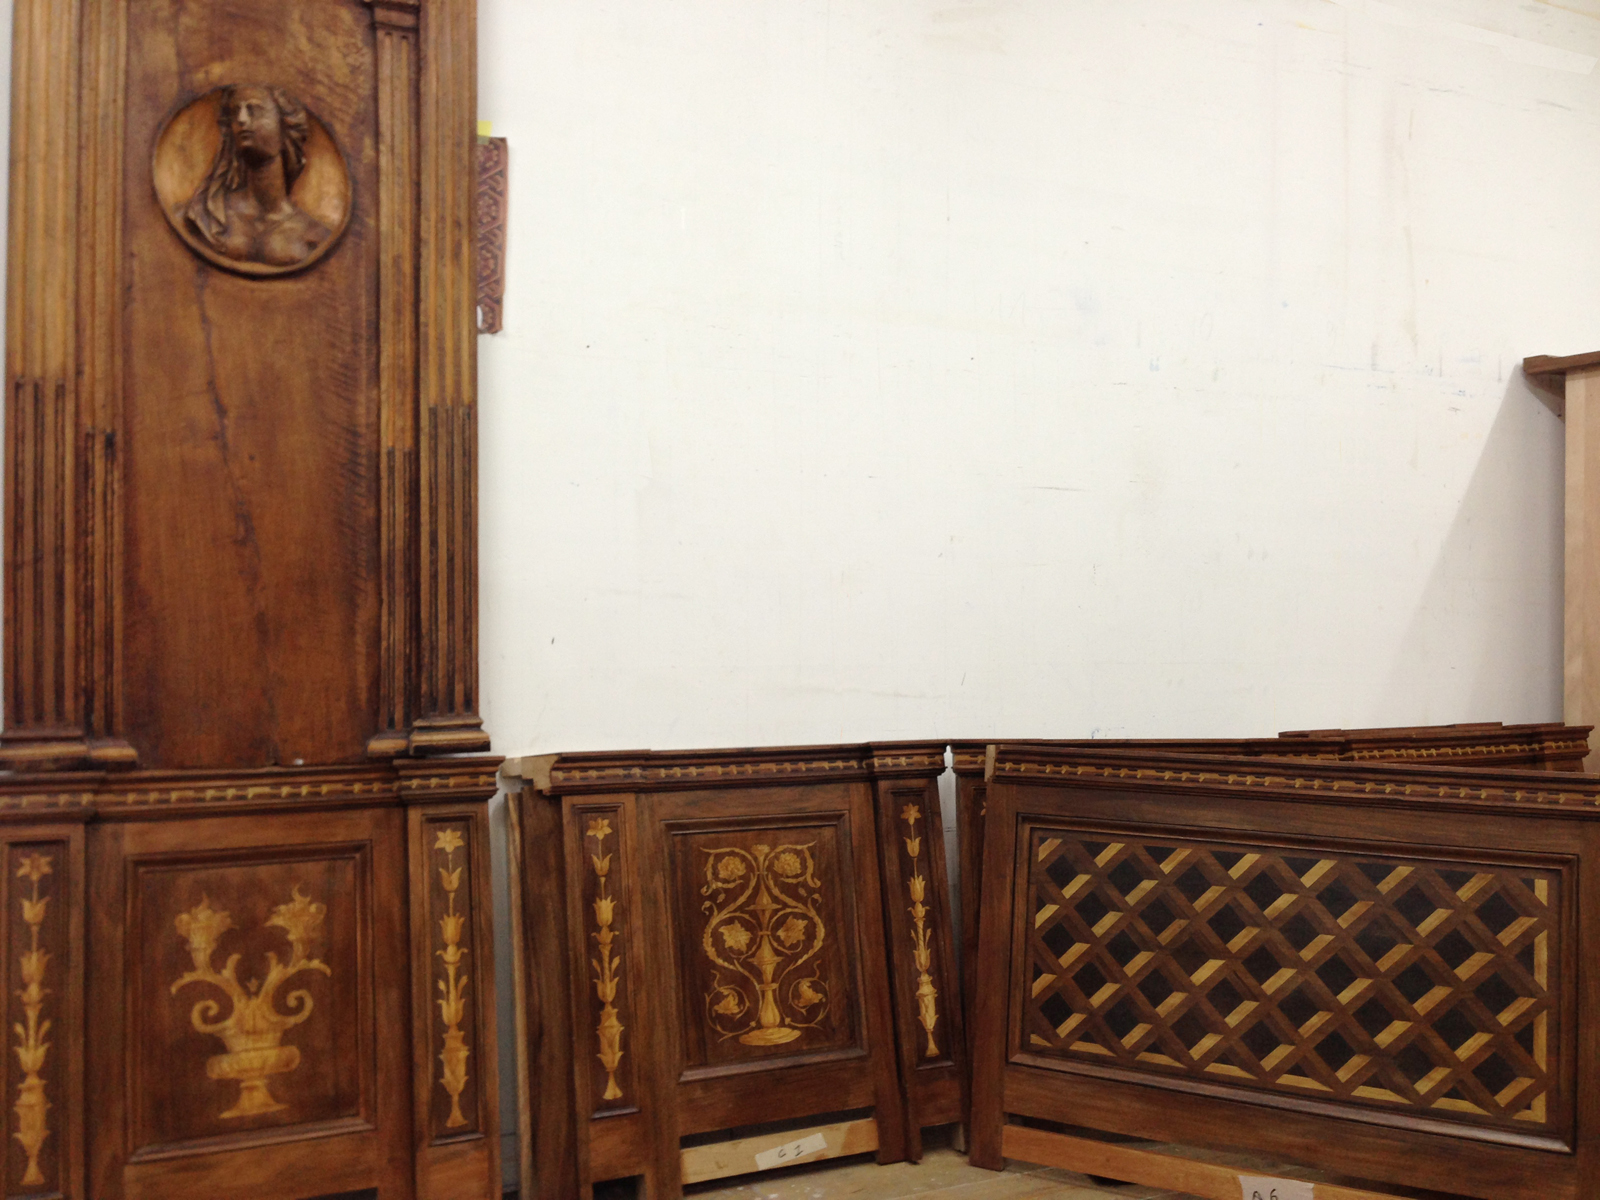 faux-wood marquetry painted on walnut elements combined with ancient panels